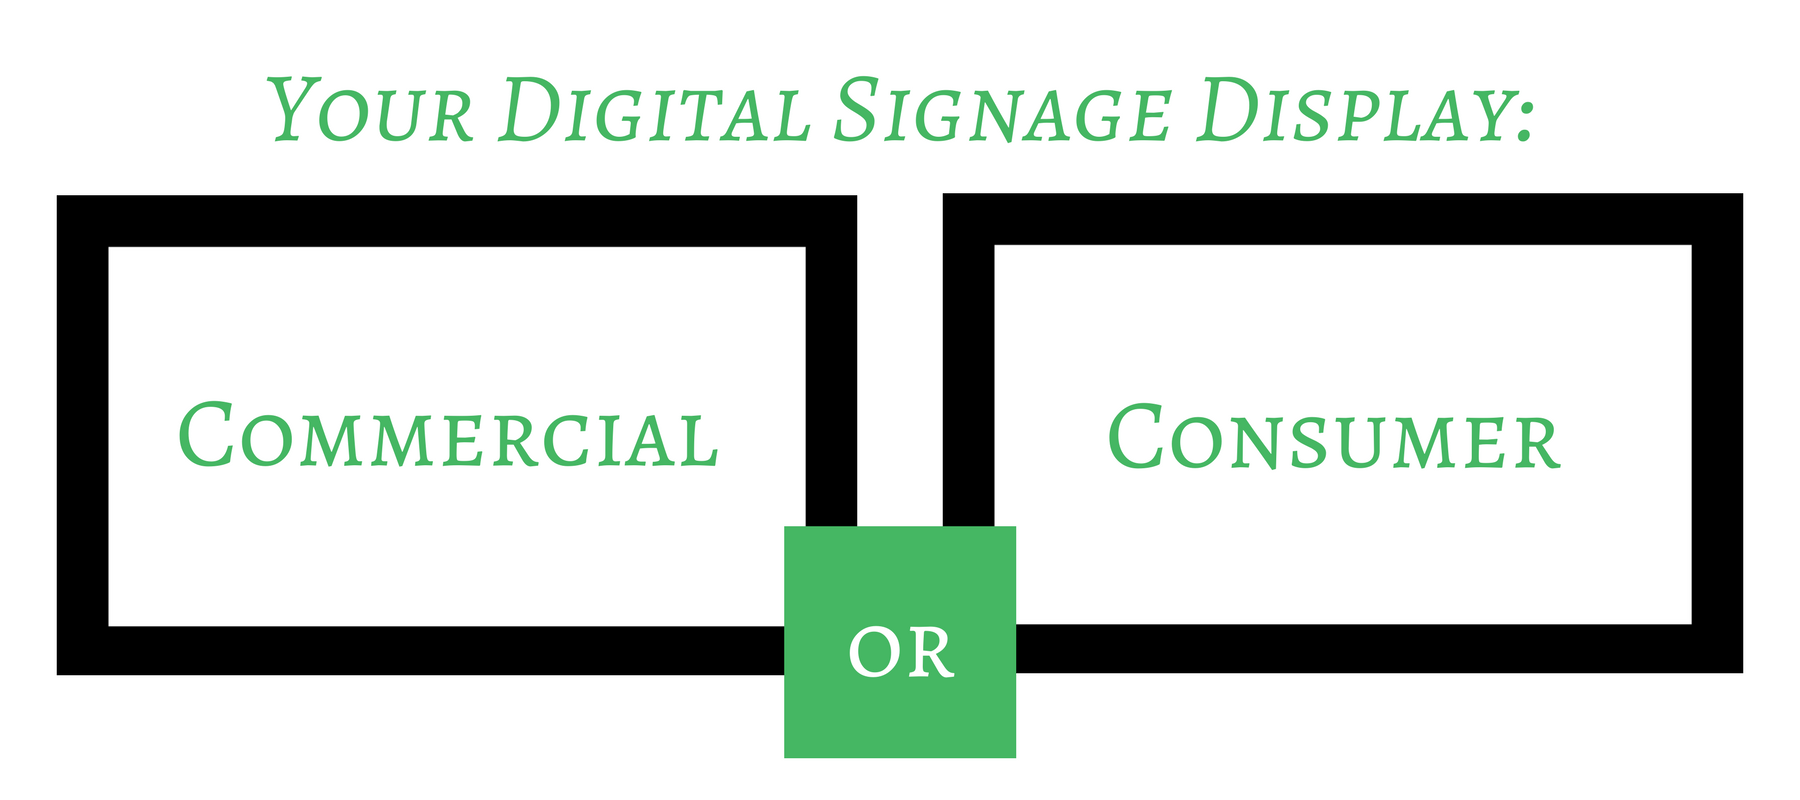 Your Digital Signage Display